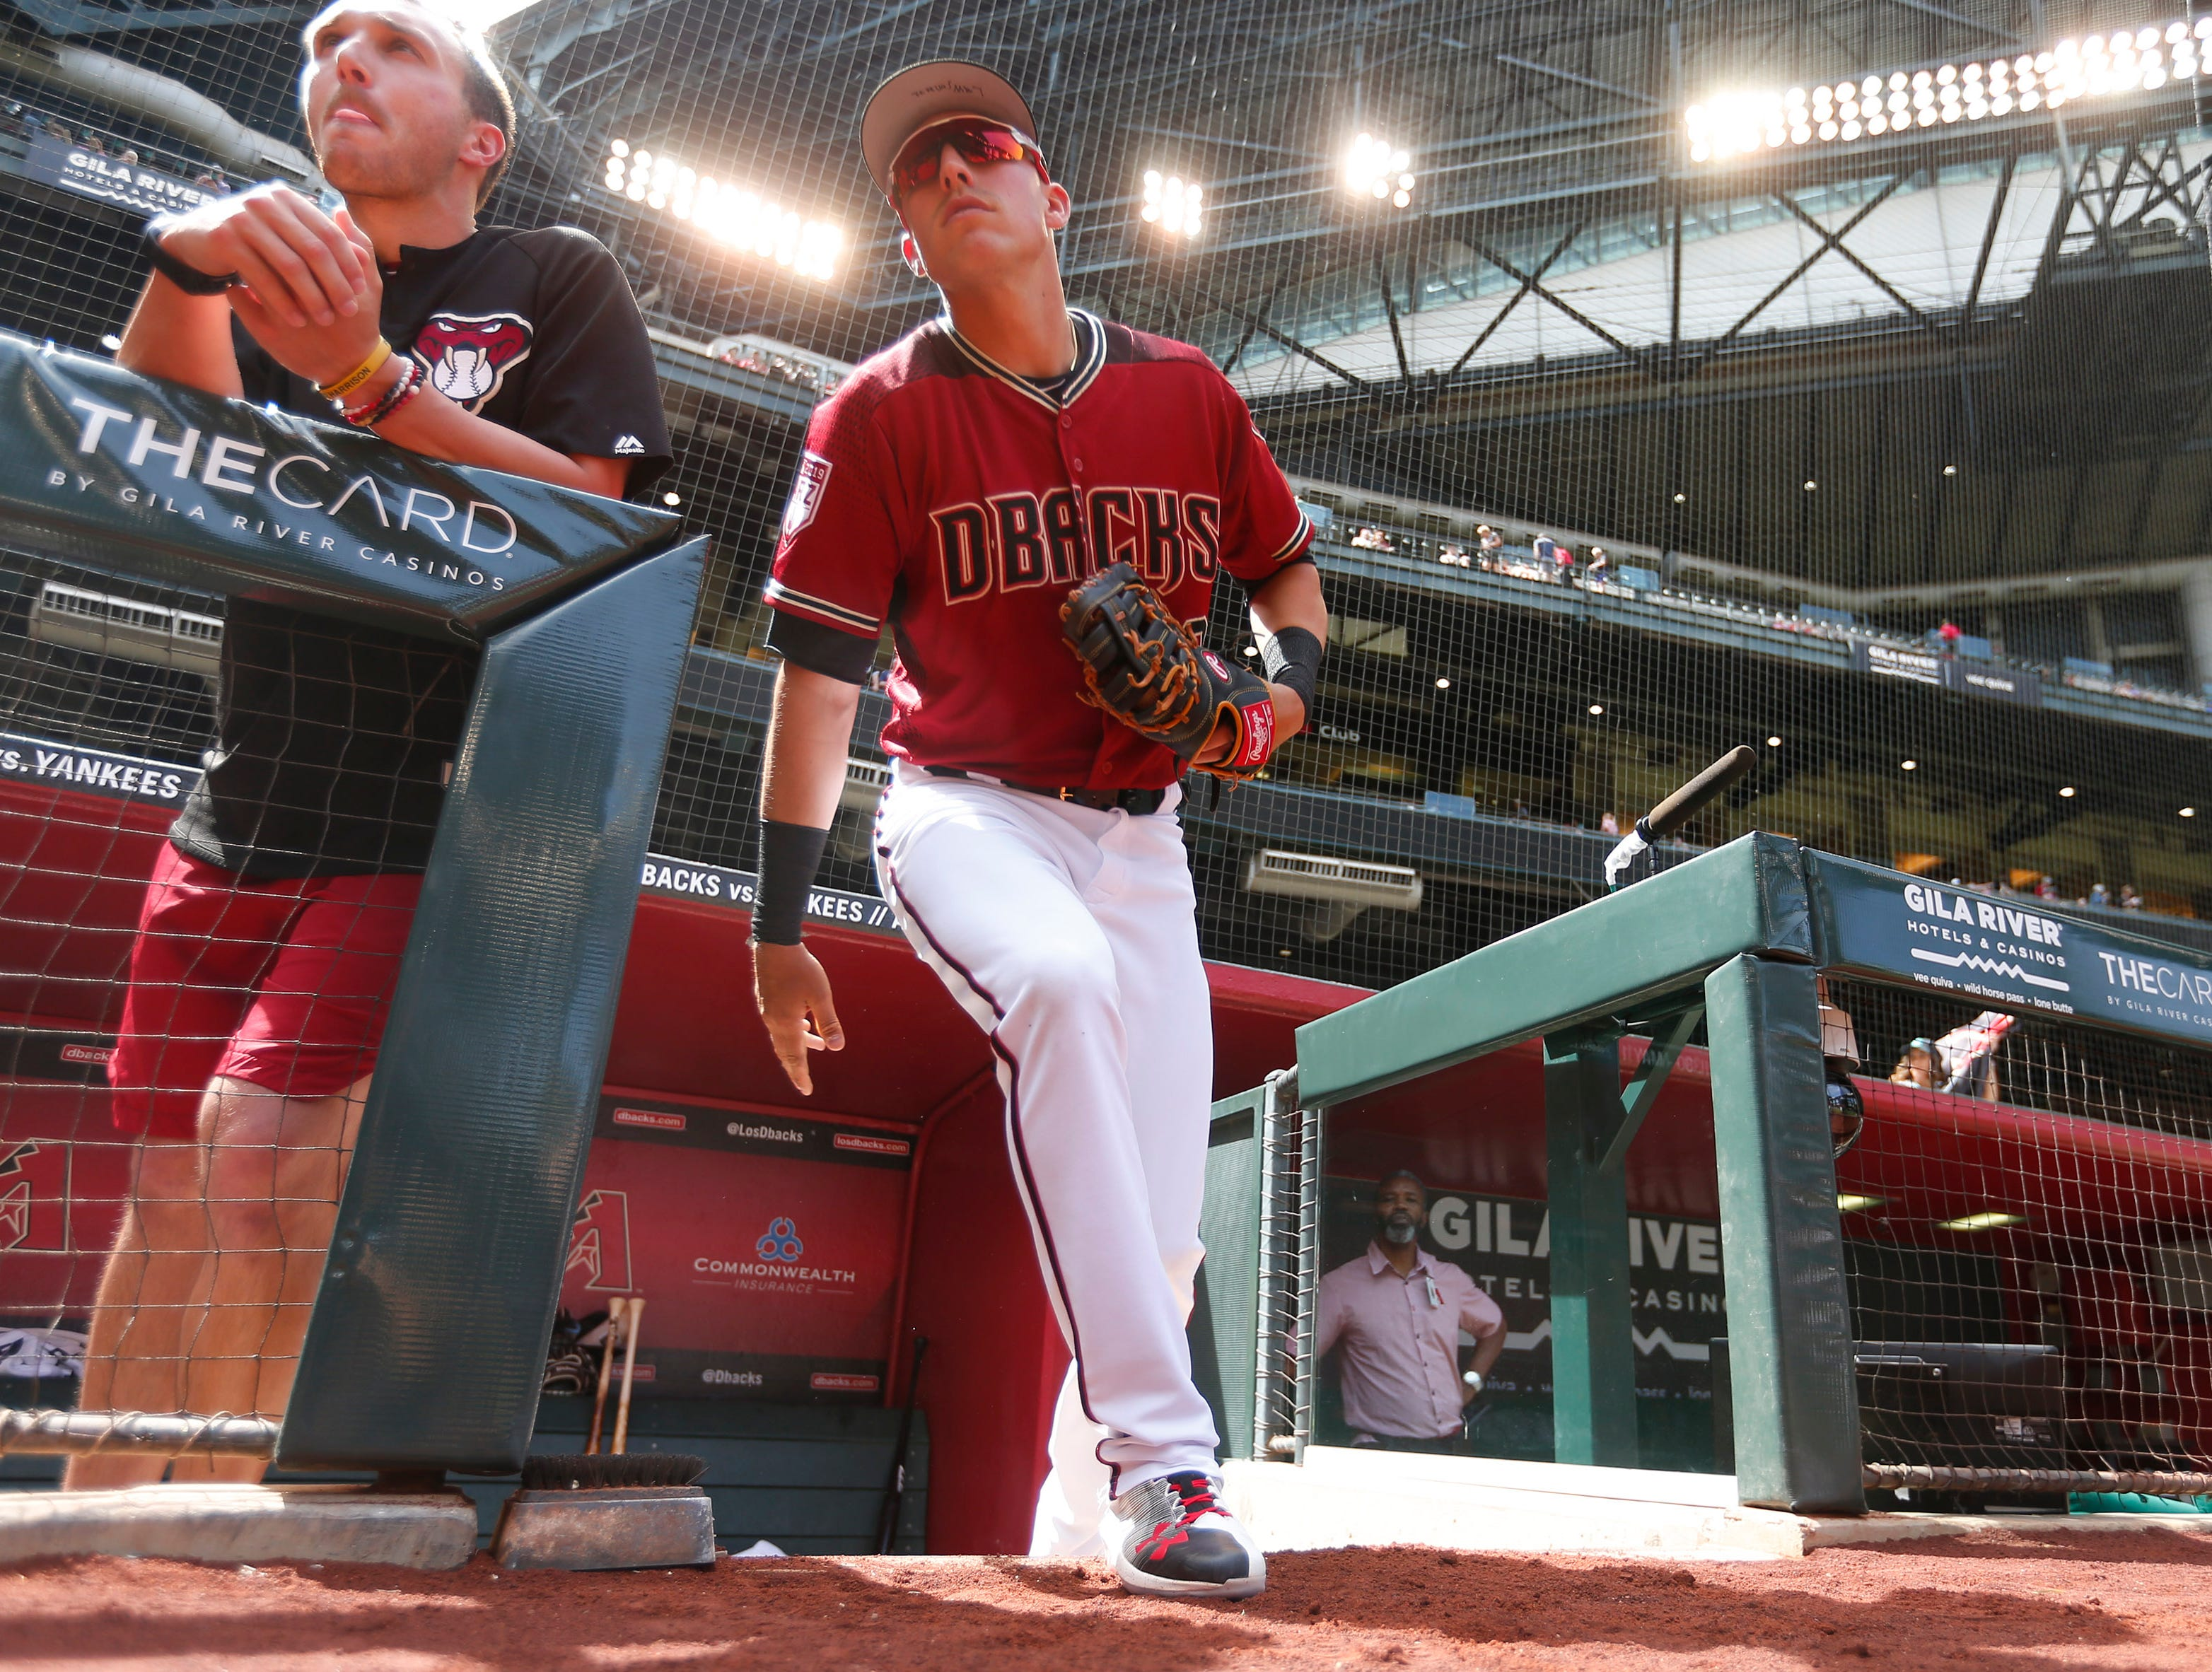 Arizona Diamondbacks first baseman Jake Lamb (22) takes the field for spring training action against the Chicago White Sox at Chase Field March 26, 2019.